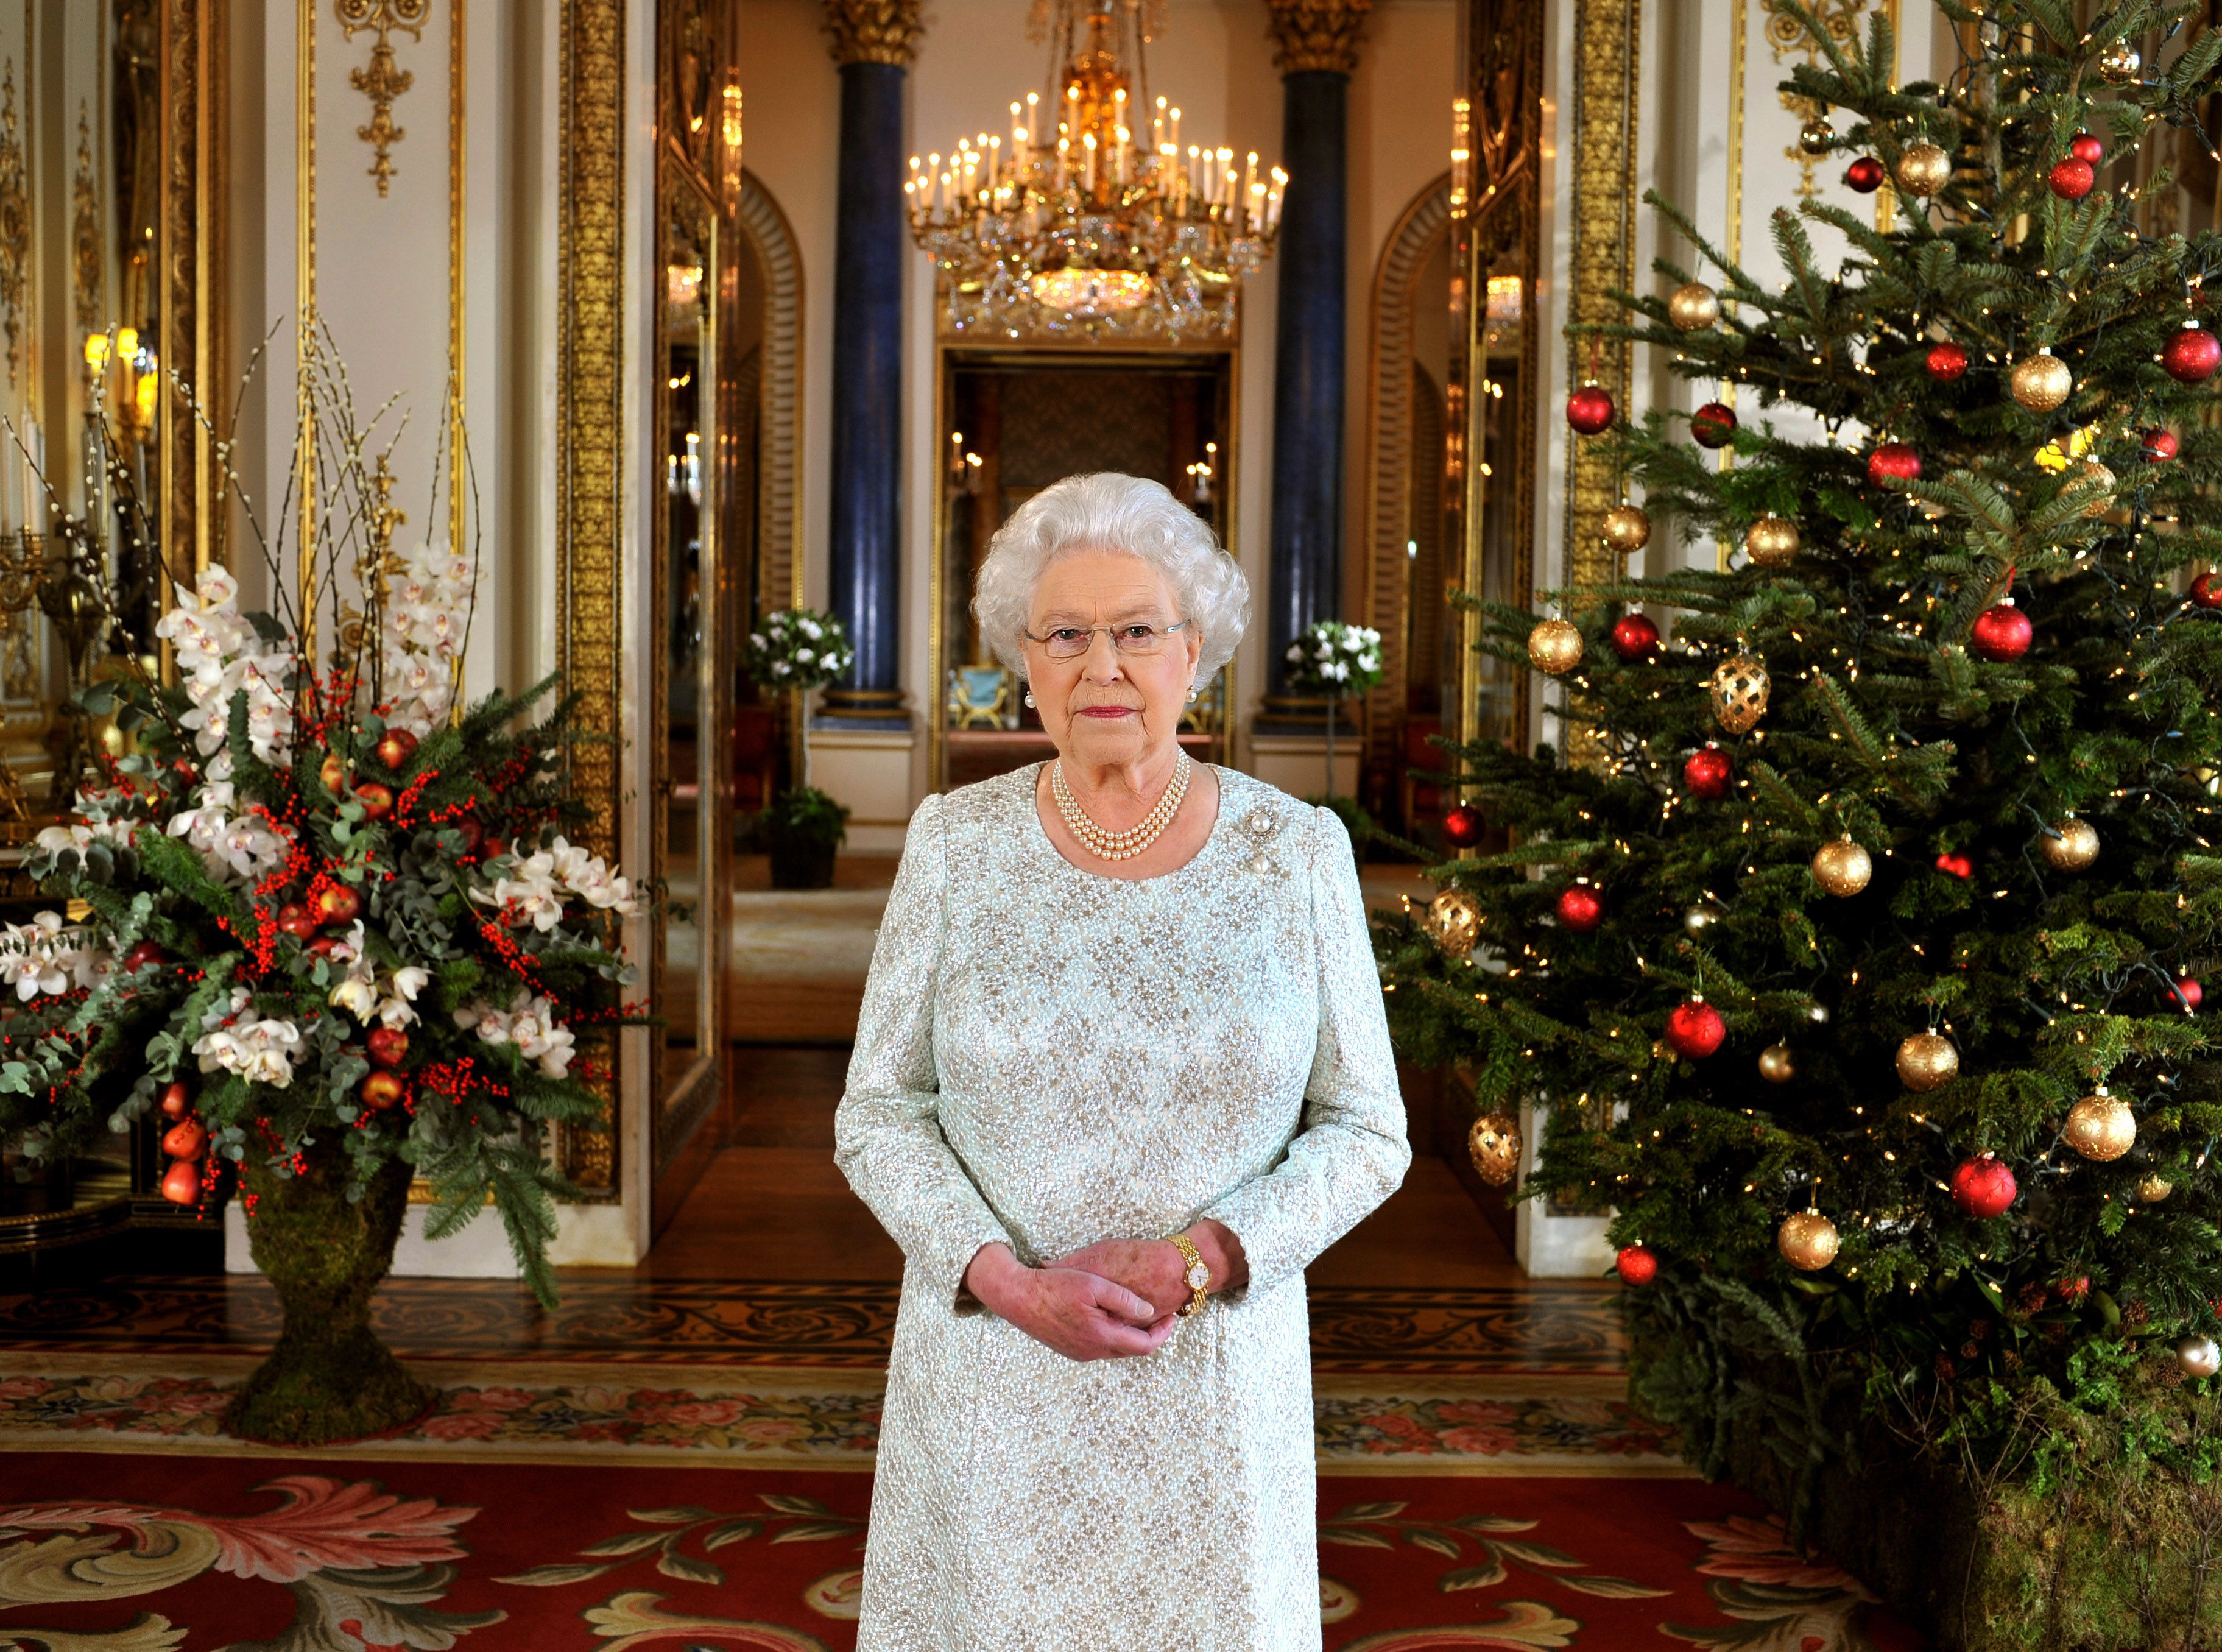 The Queen's Windsor Castle residence has been decorated for Christmas